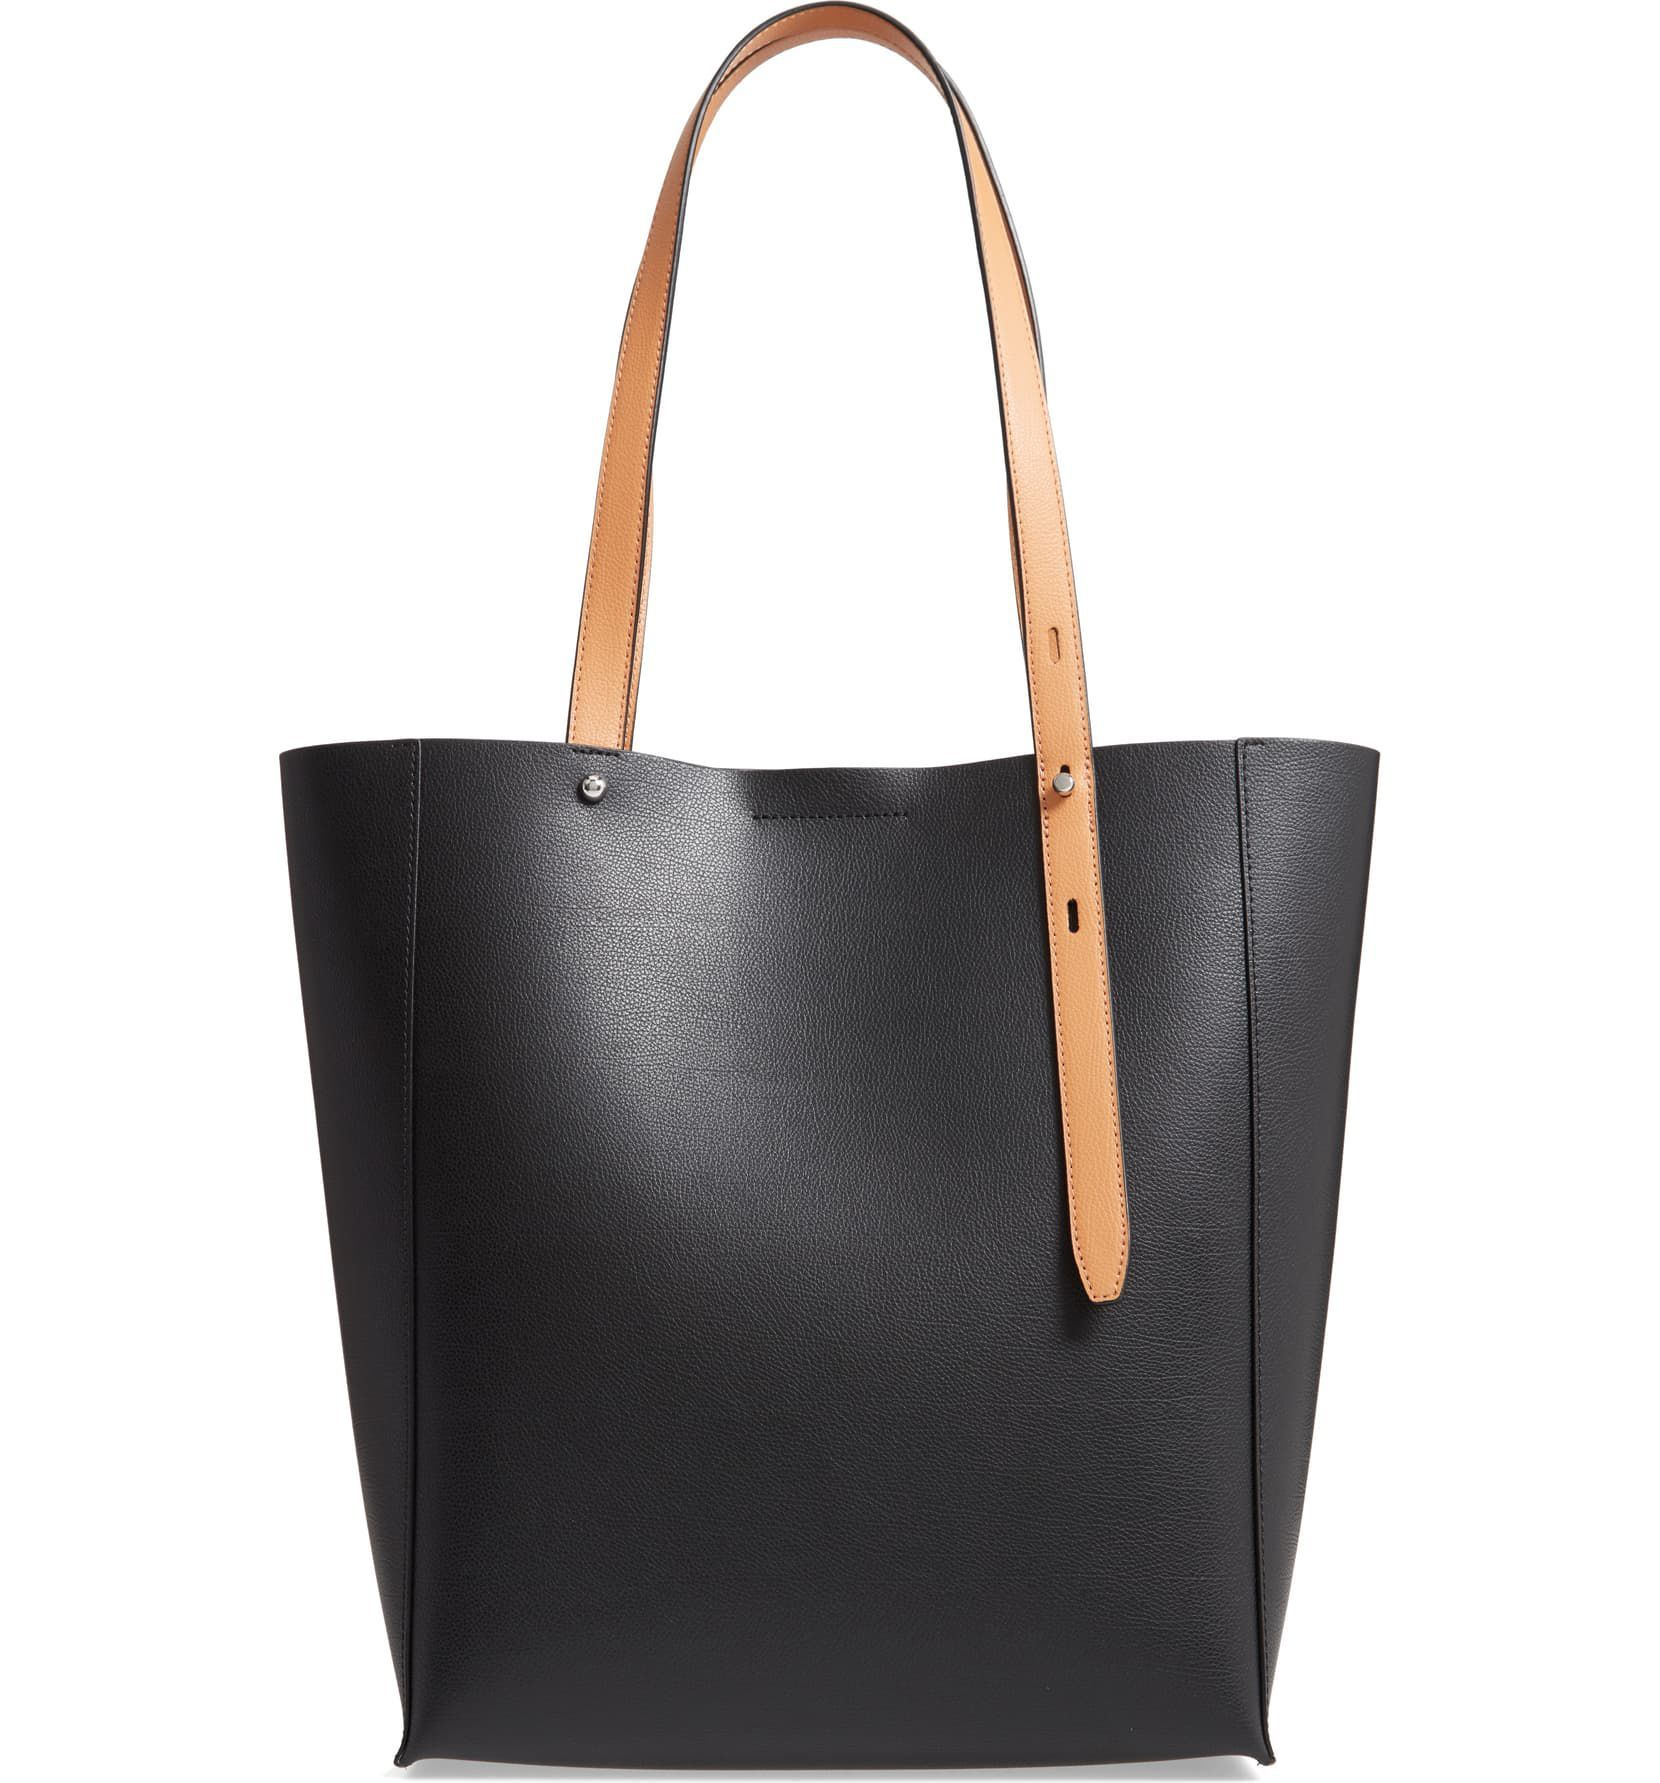 e9c12cc7493b83 15 Best Laptop Bags For Women 2019 - Stylish Work Bags For Your Computer